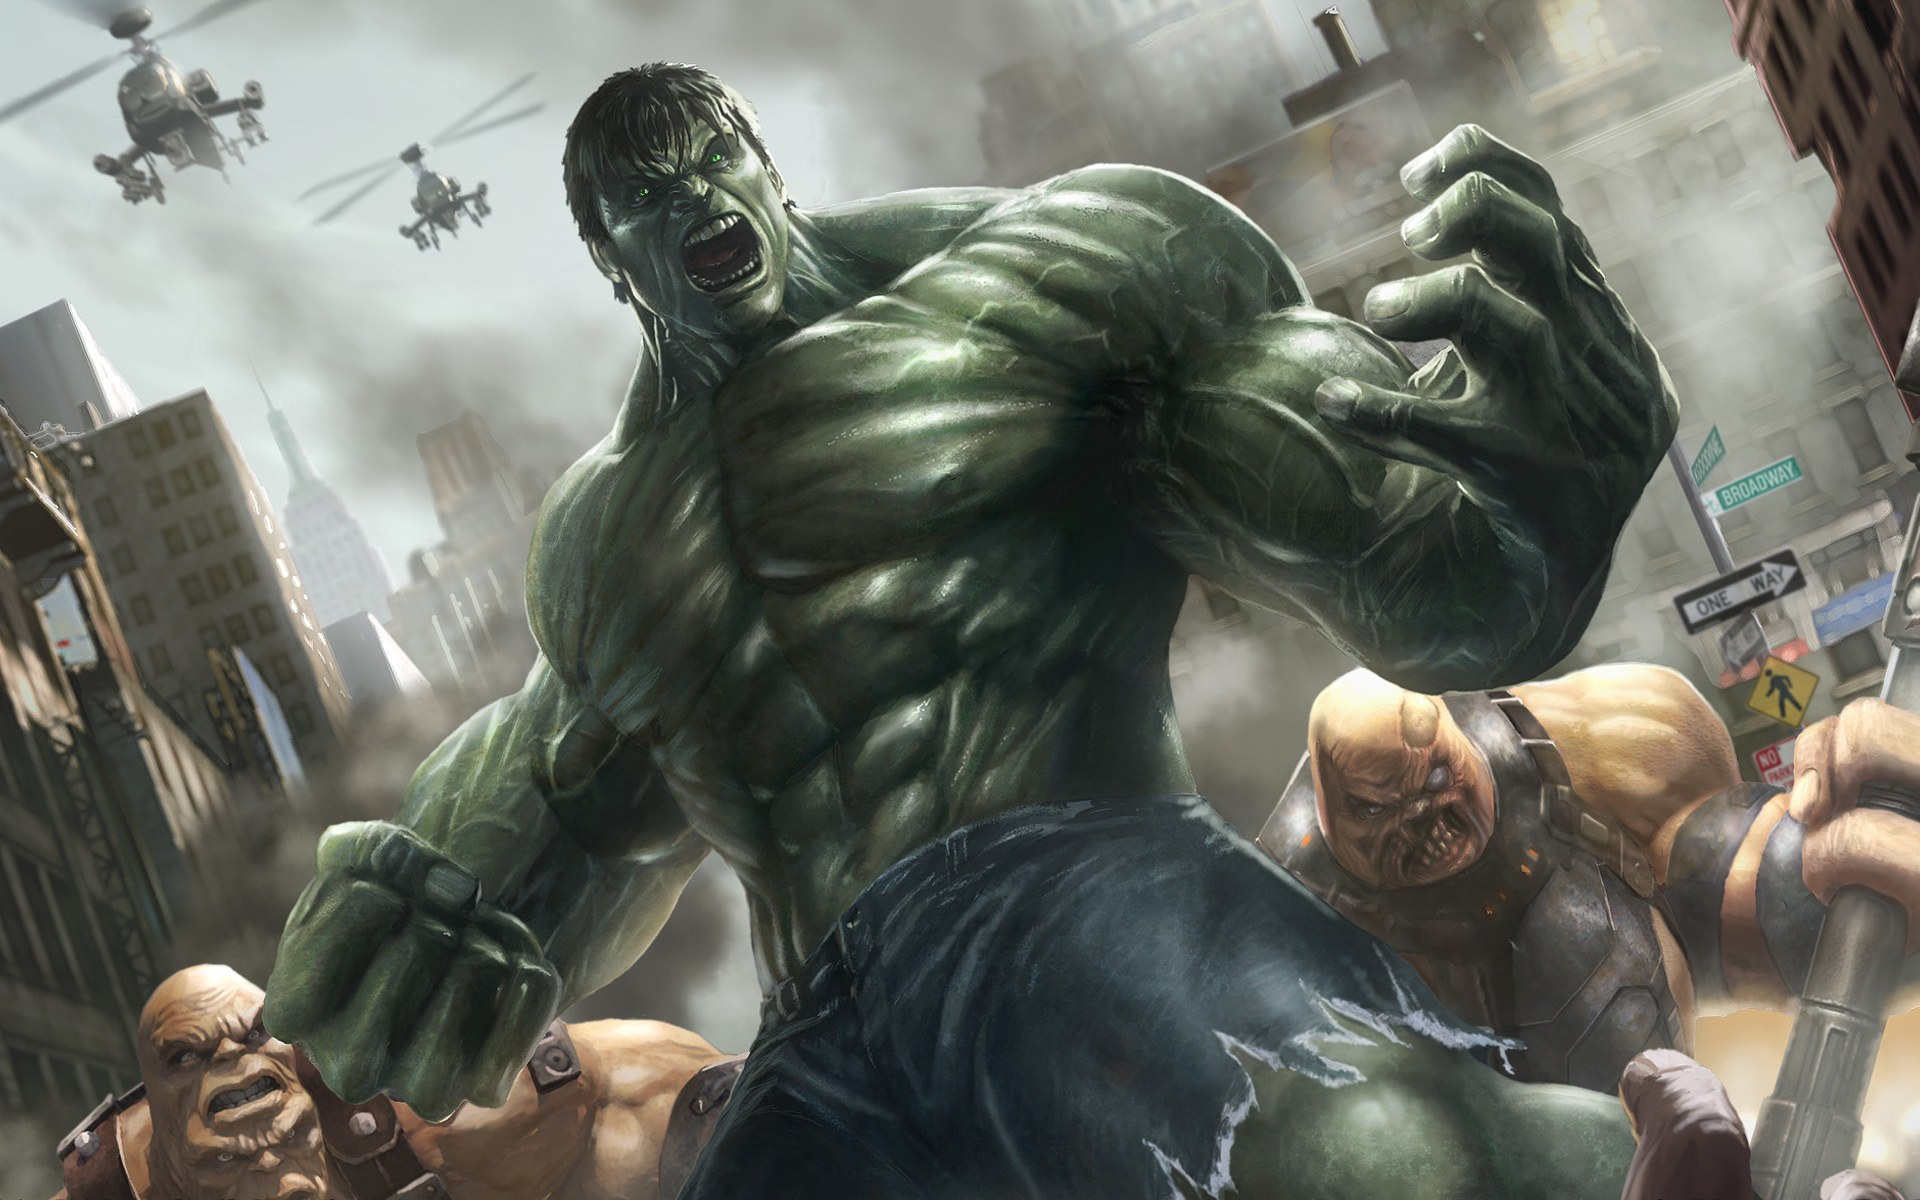 Where S The Love For The Hulk The Young Folks